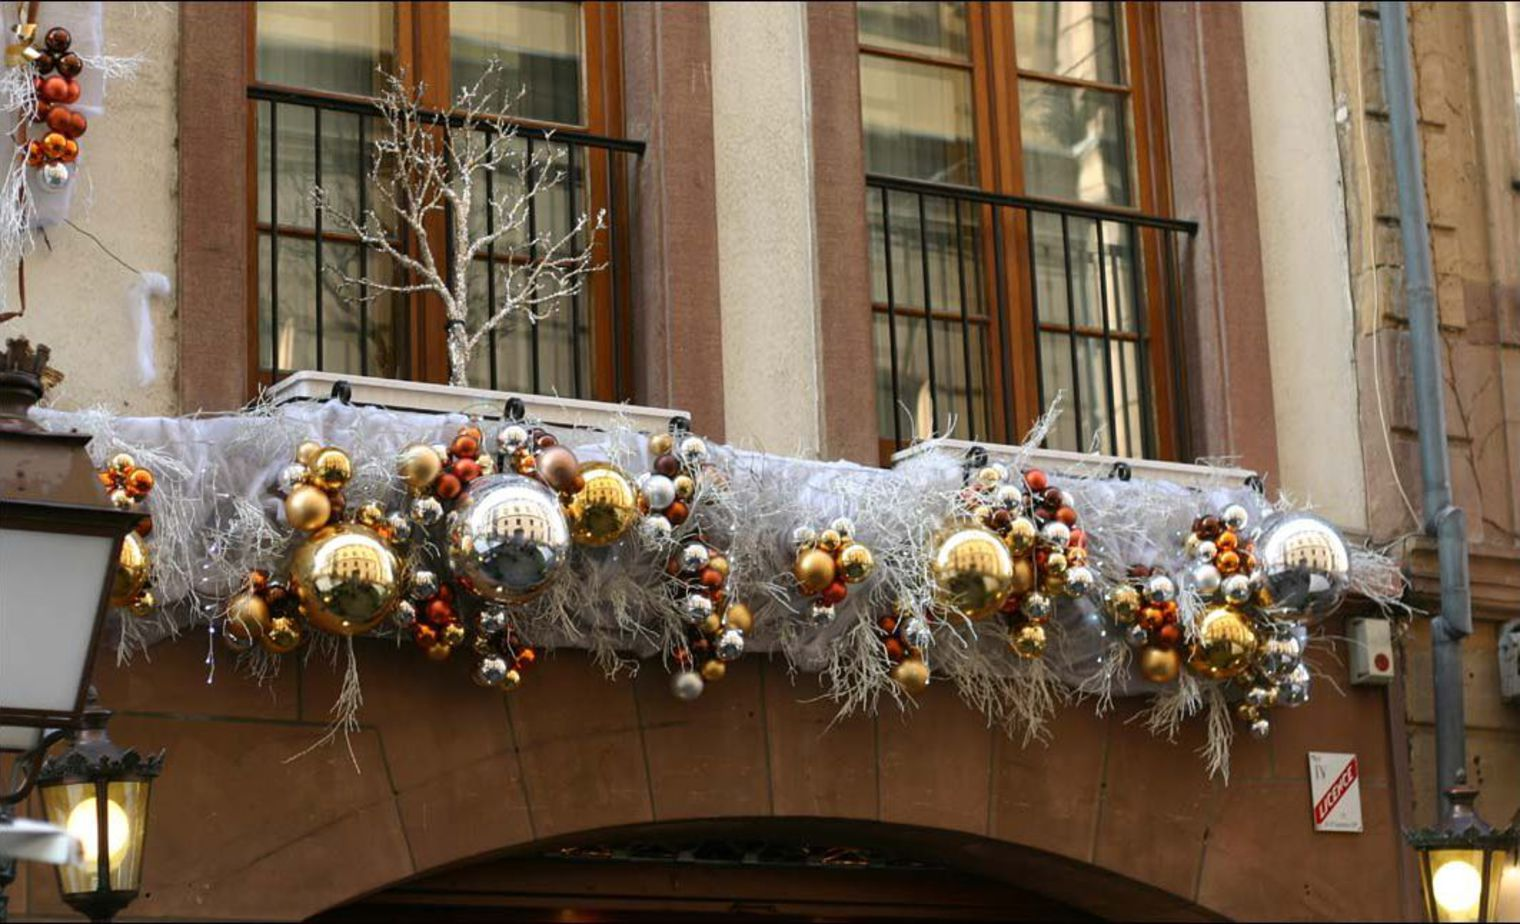 D coration noel sur balcon exemples d 39 am nagements for Decoration de noel professionnel